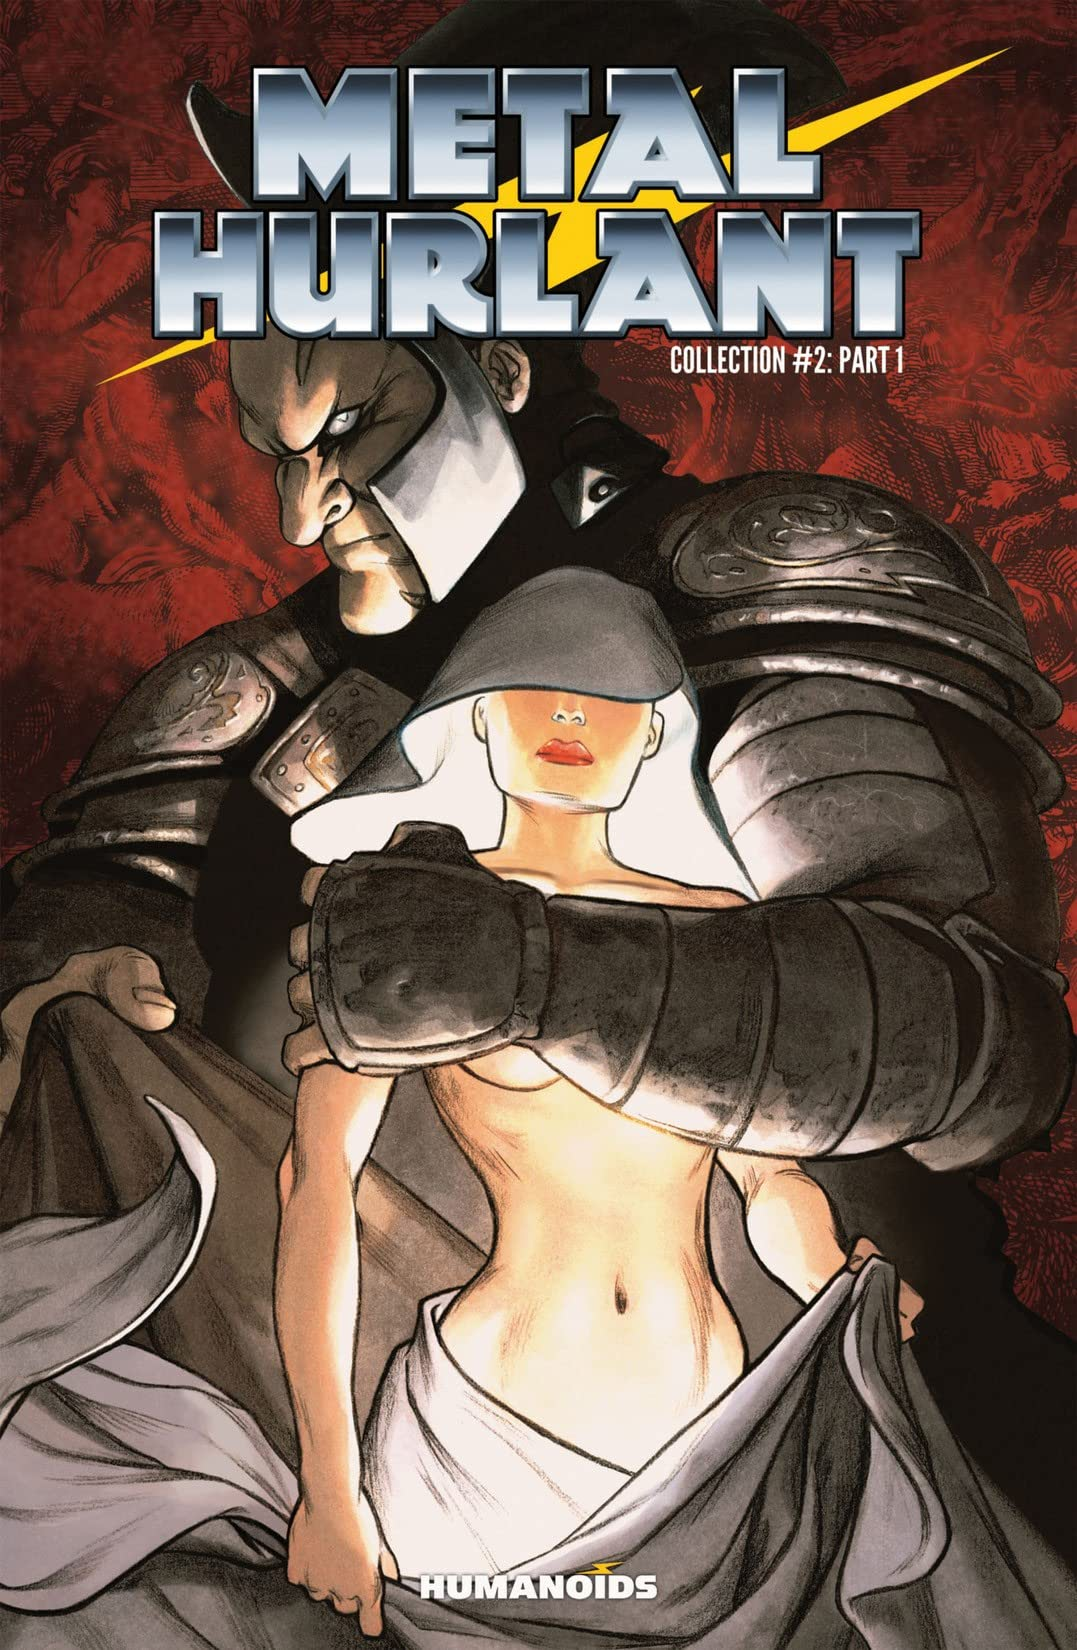 Metal Hurlant Collection 2 Vol. 1